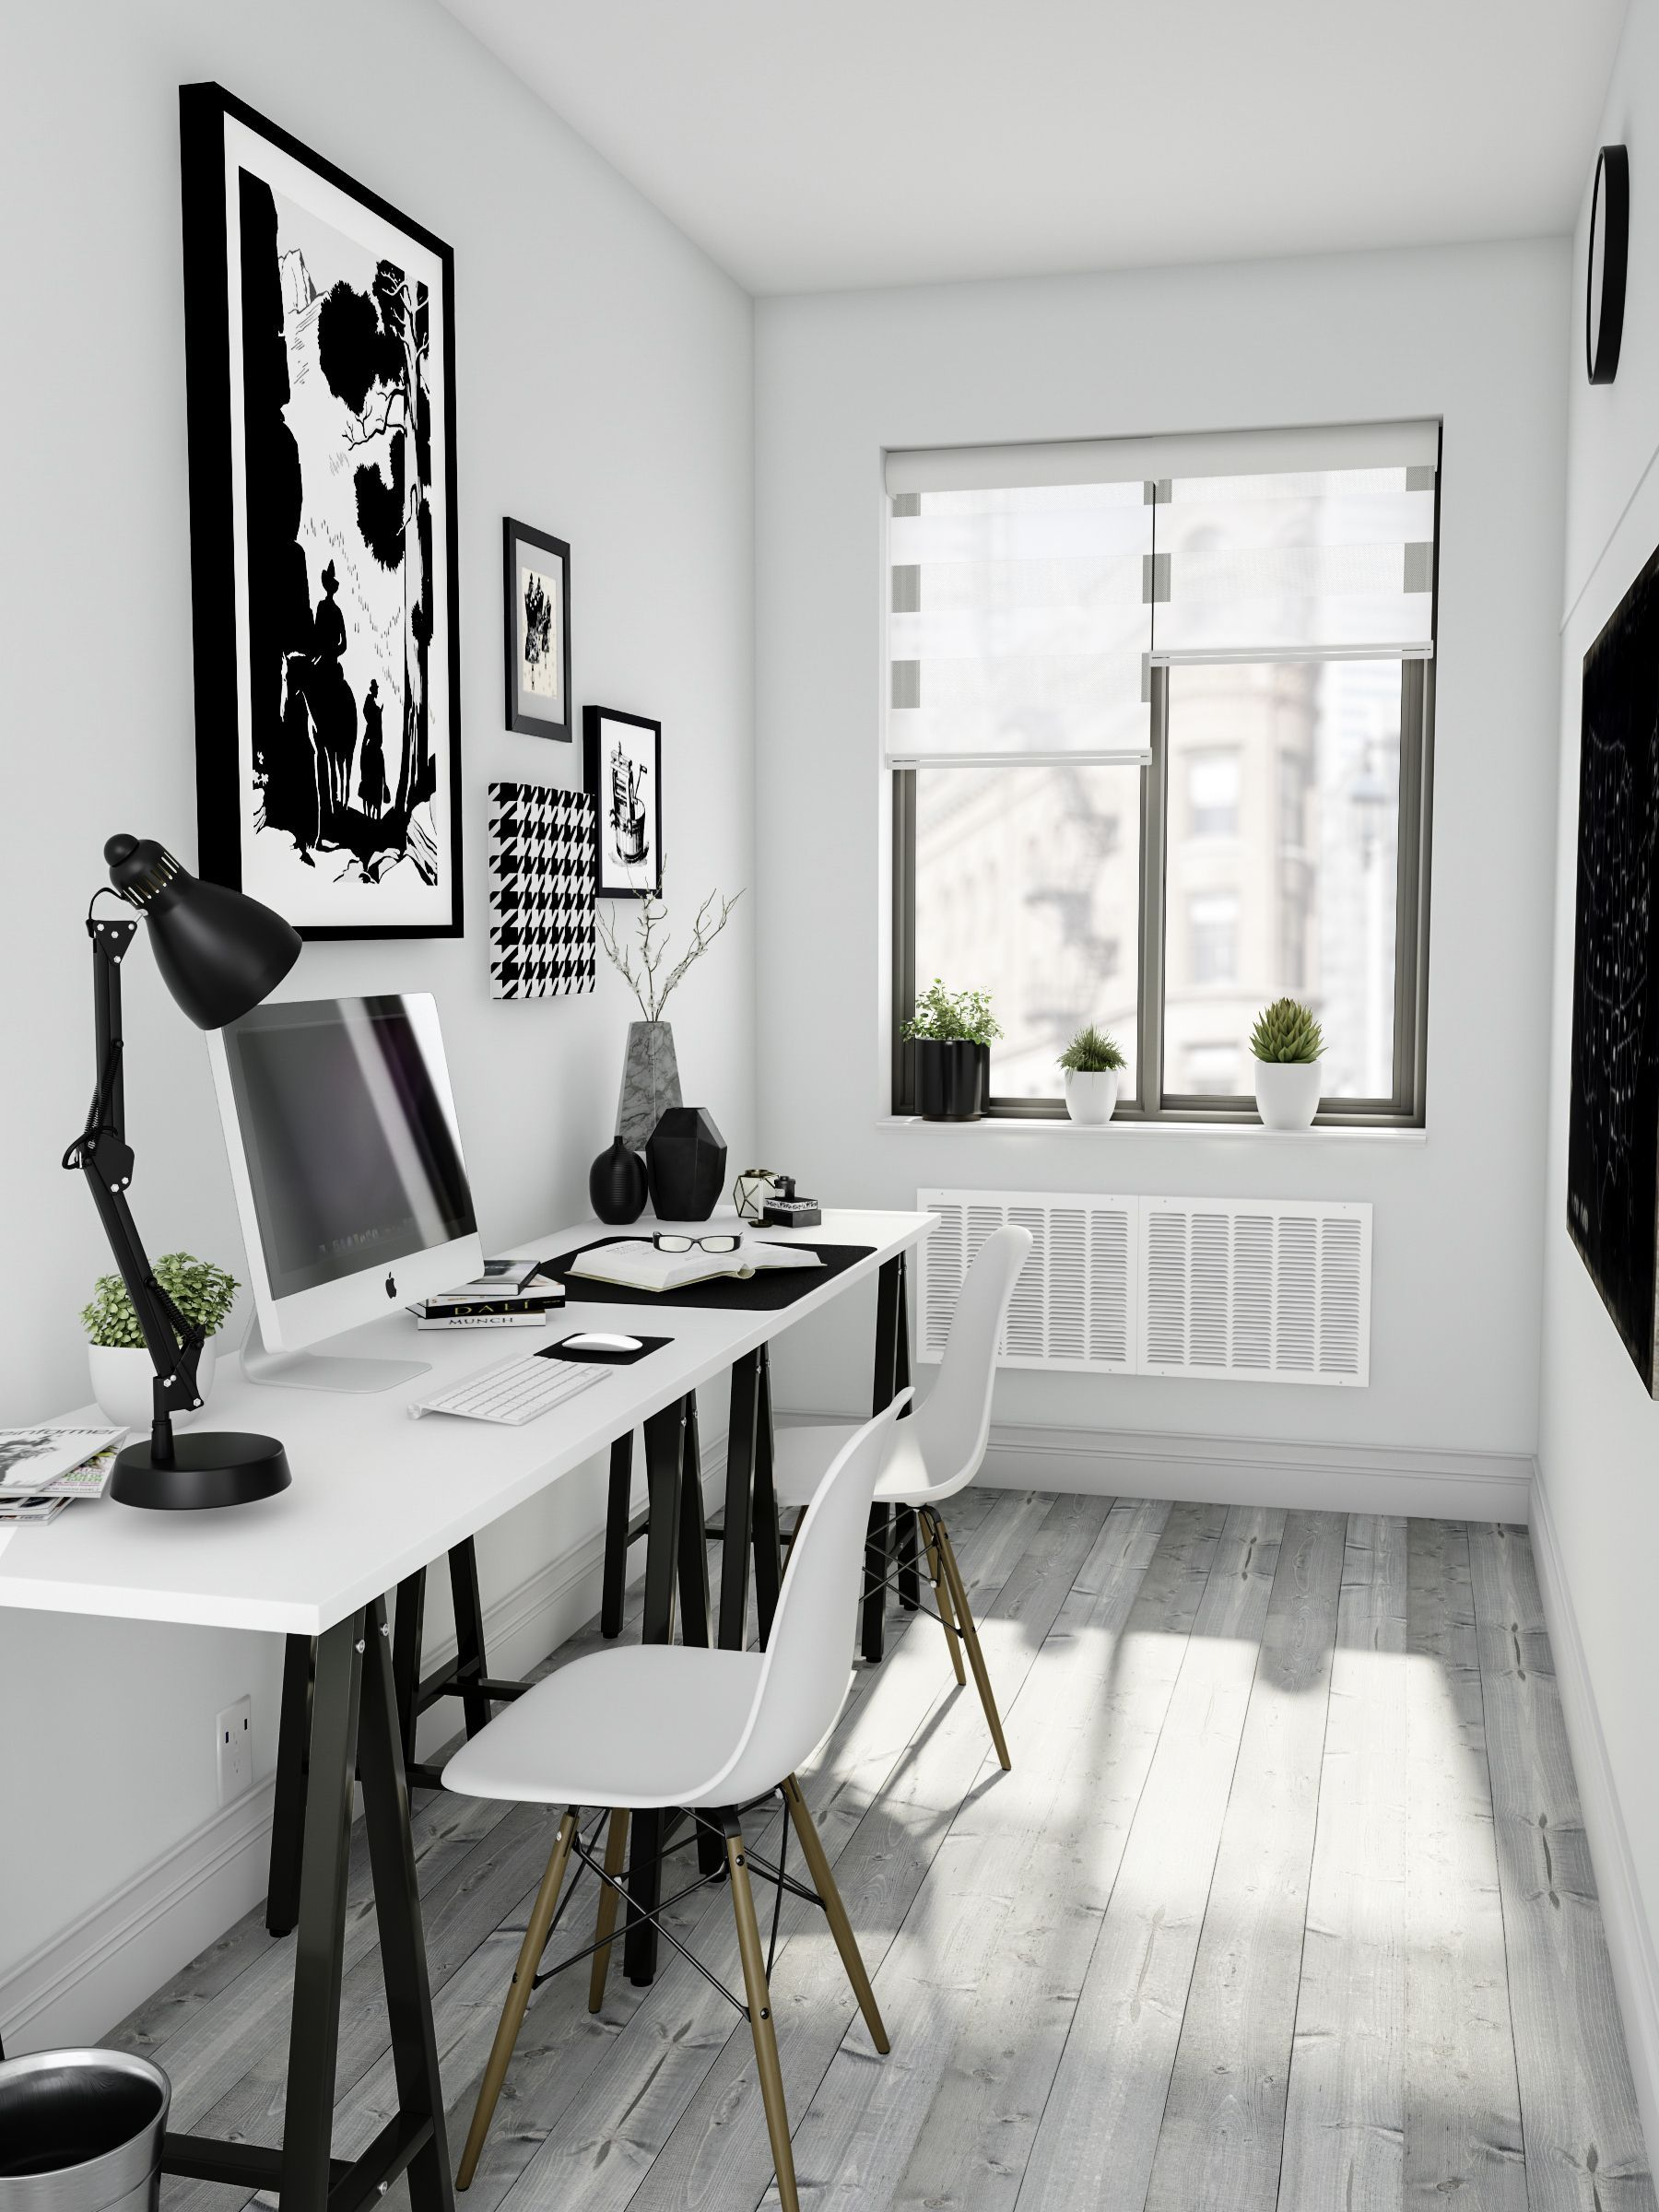 When You Re Craving A Space For Creativity Or Just Productivity Simplicity Helps This Mo Arbeitszimmer Zuhause Büroraumgestaltung Wohnzimmer Ideen Wohnung